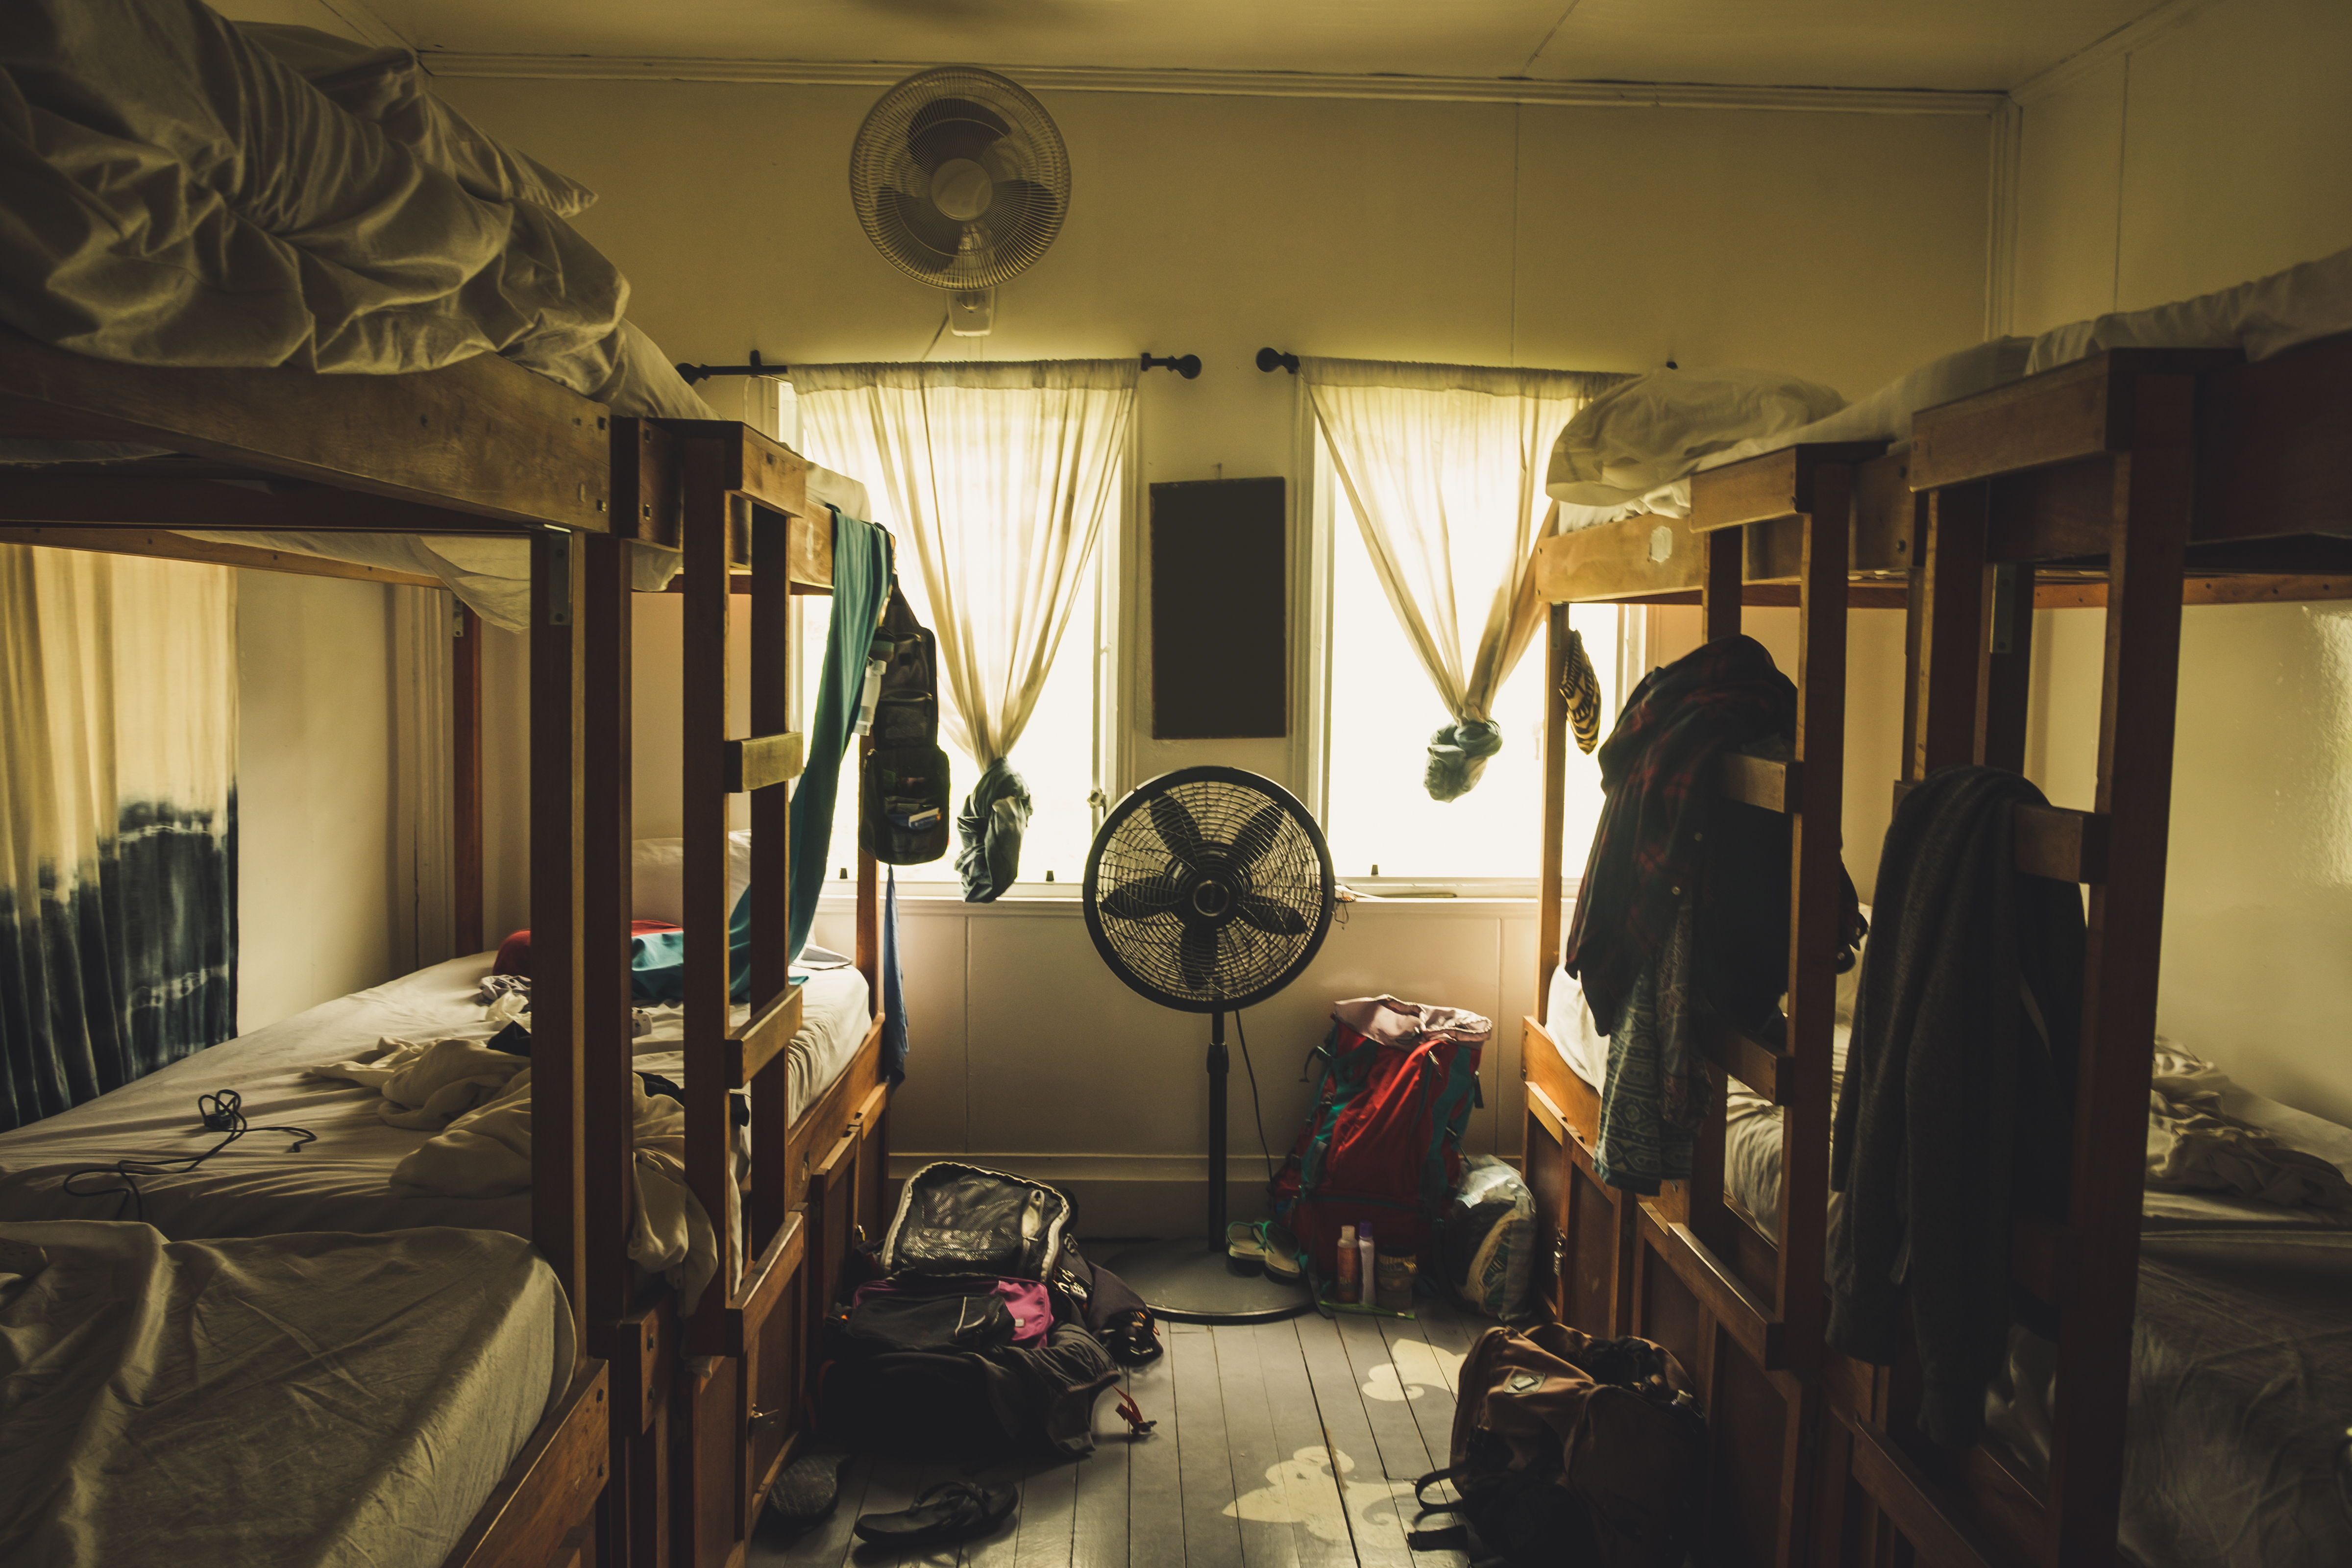 Dorm room at college